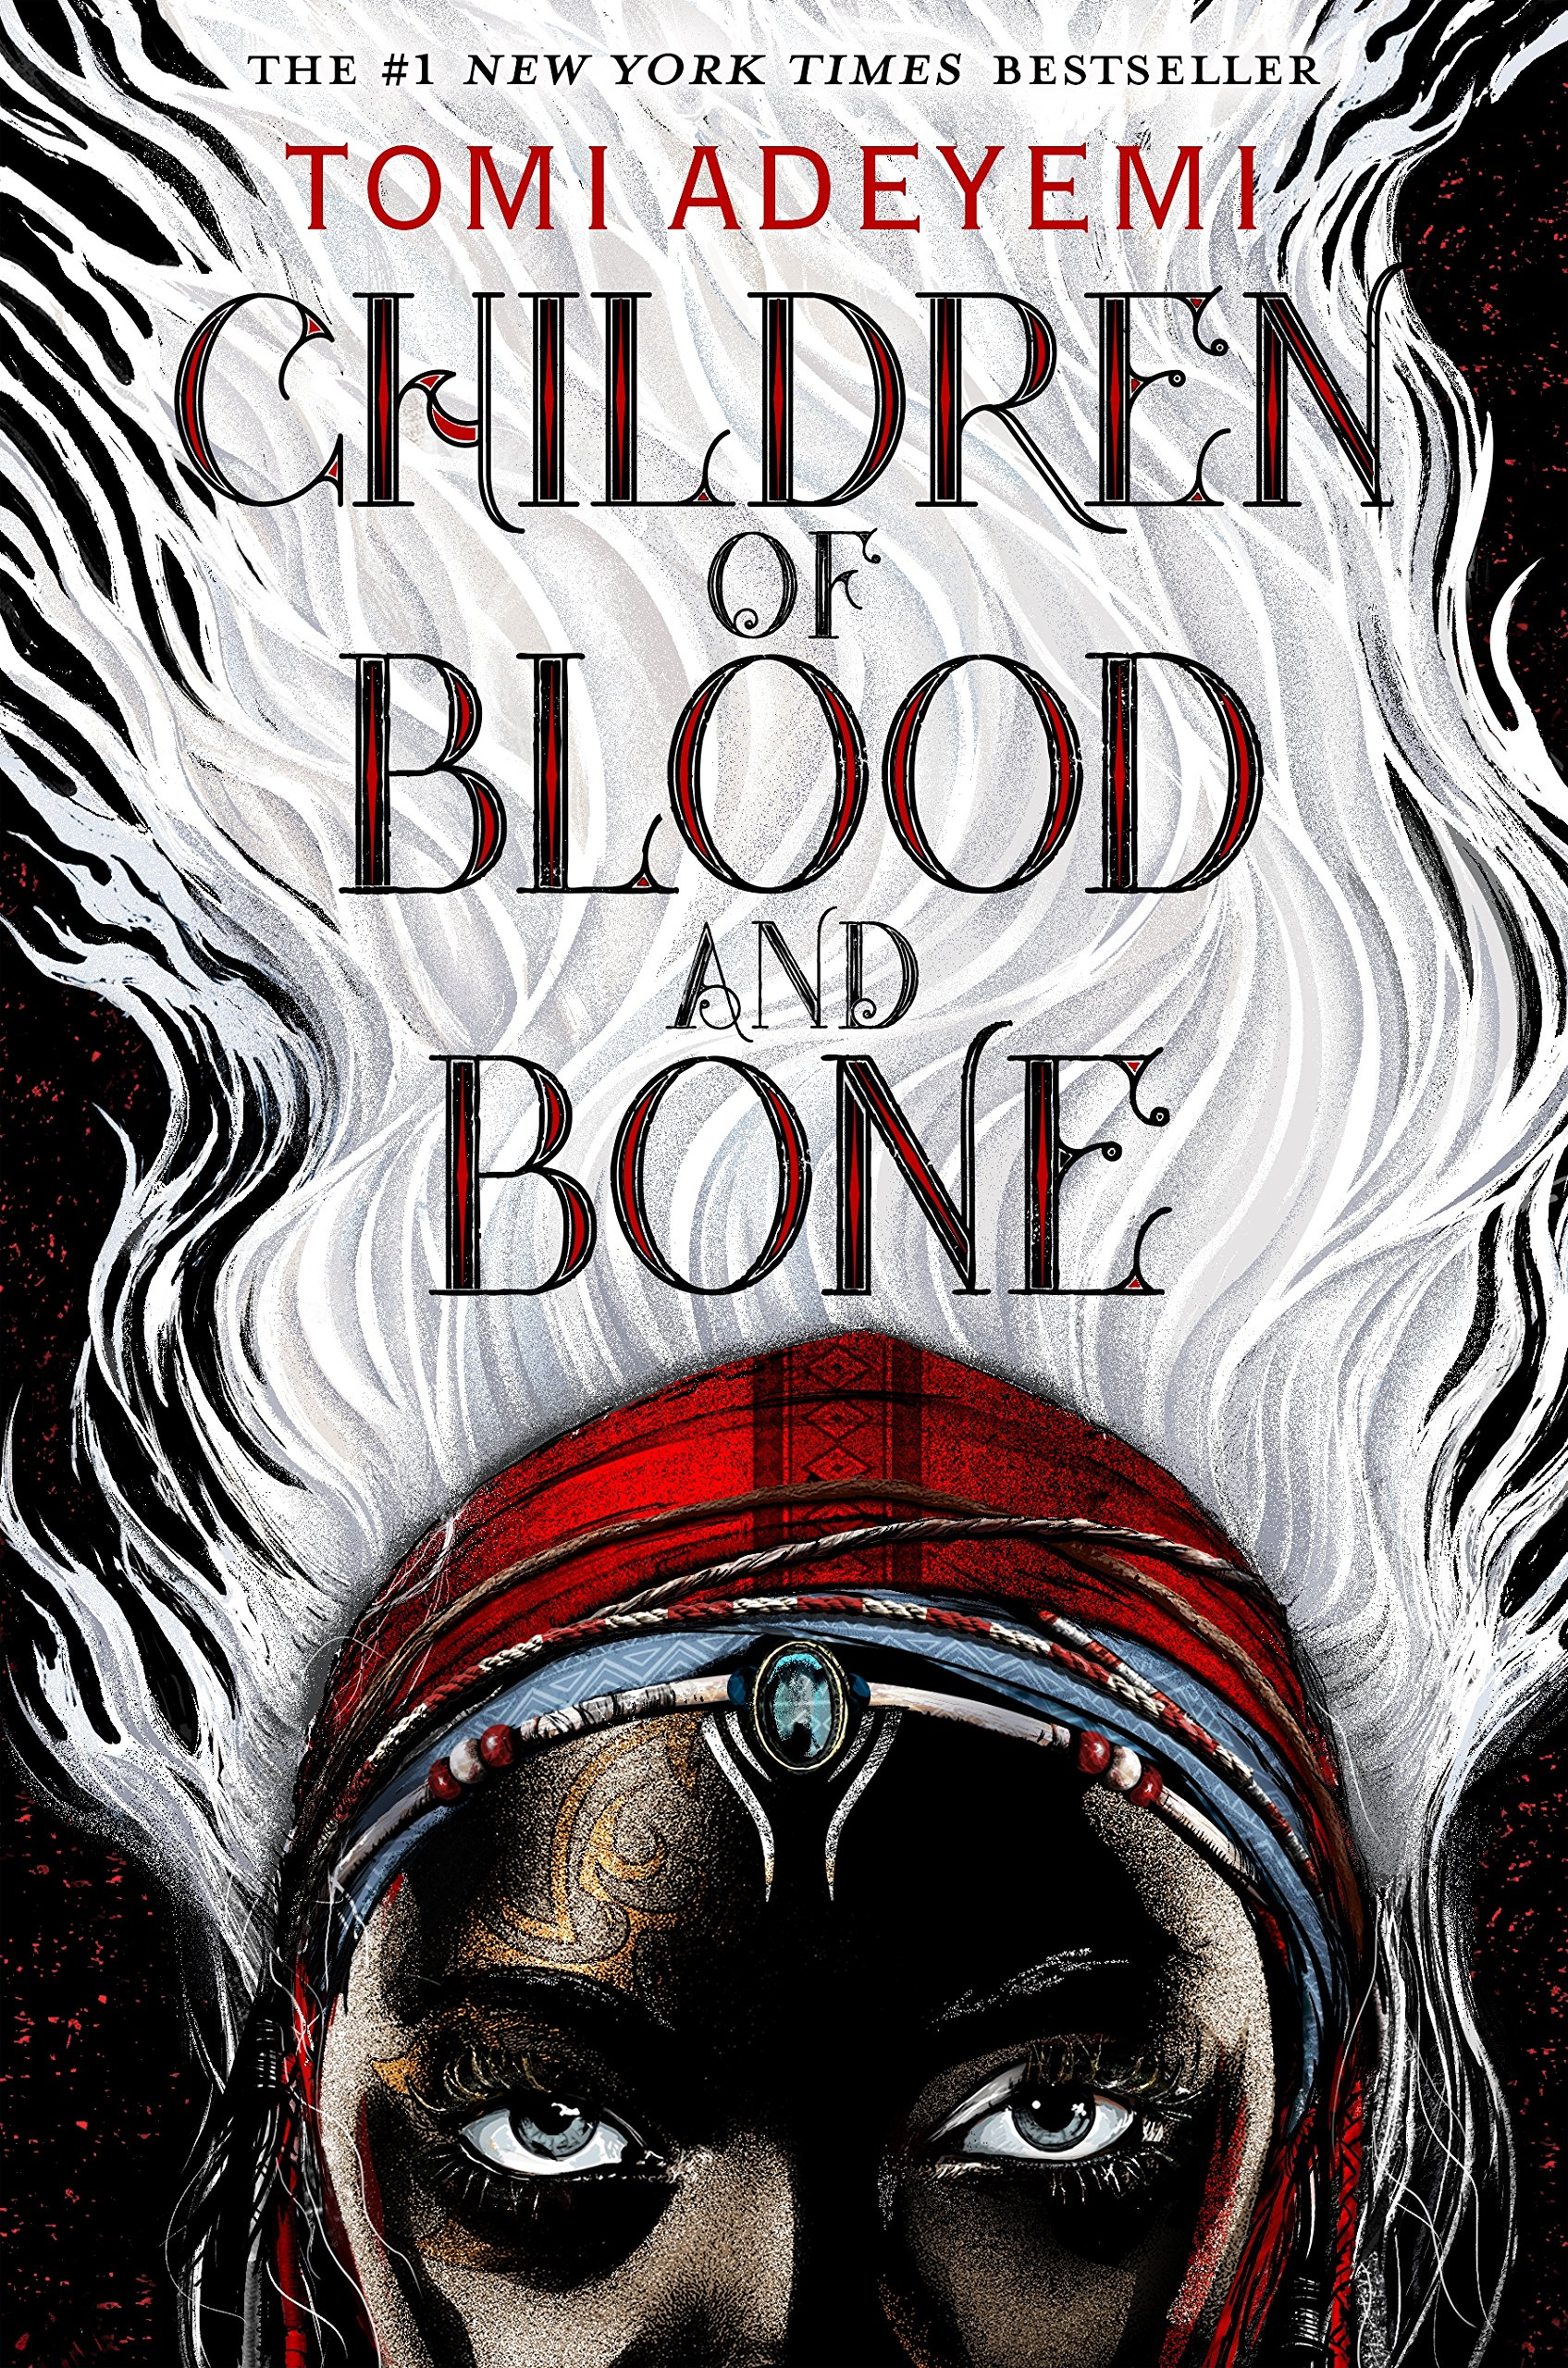 Children of Blood and Bone by Tomi Adeyemi - Black Panther vibes rule hard here and I'm not complaining. I loved this story about a young girl fighting a monarchy to bring magic back to her people and I'm very obsessed with the author. She was just 24 when this book came out to huge success - she has a deal for three books in this series (the second one is coming out in December) and a movie for CBB is already in pre-production.